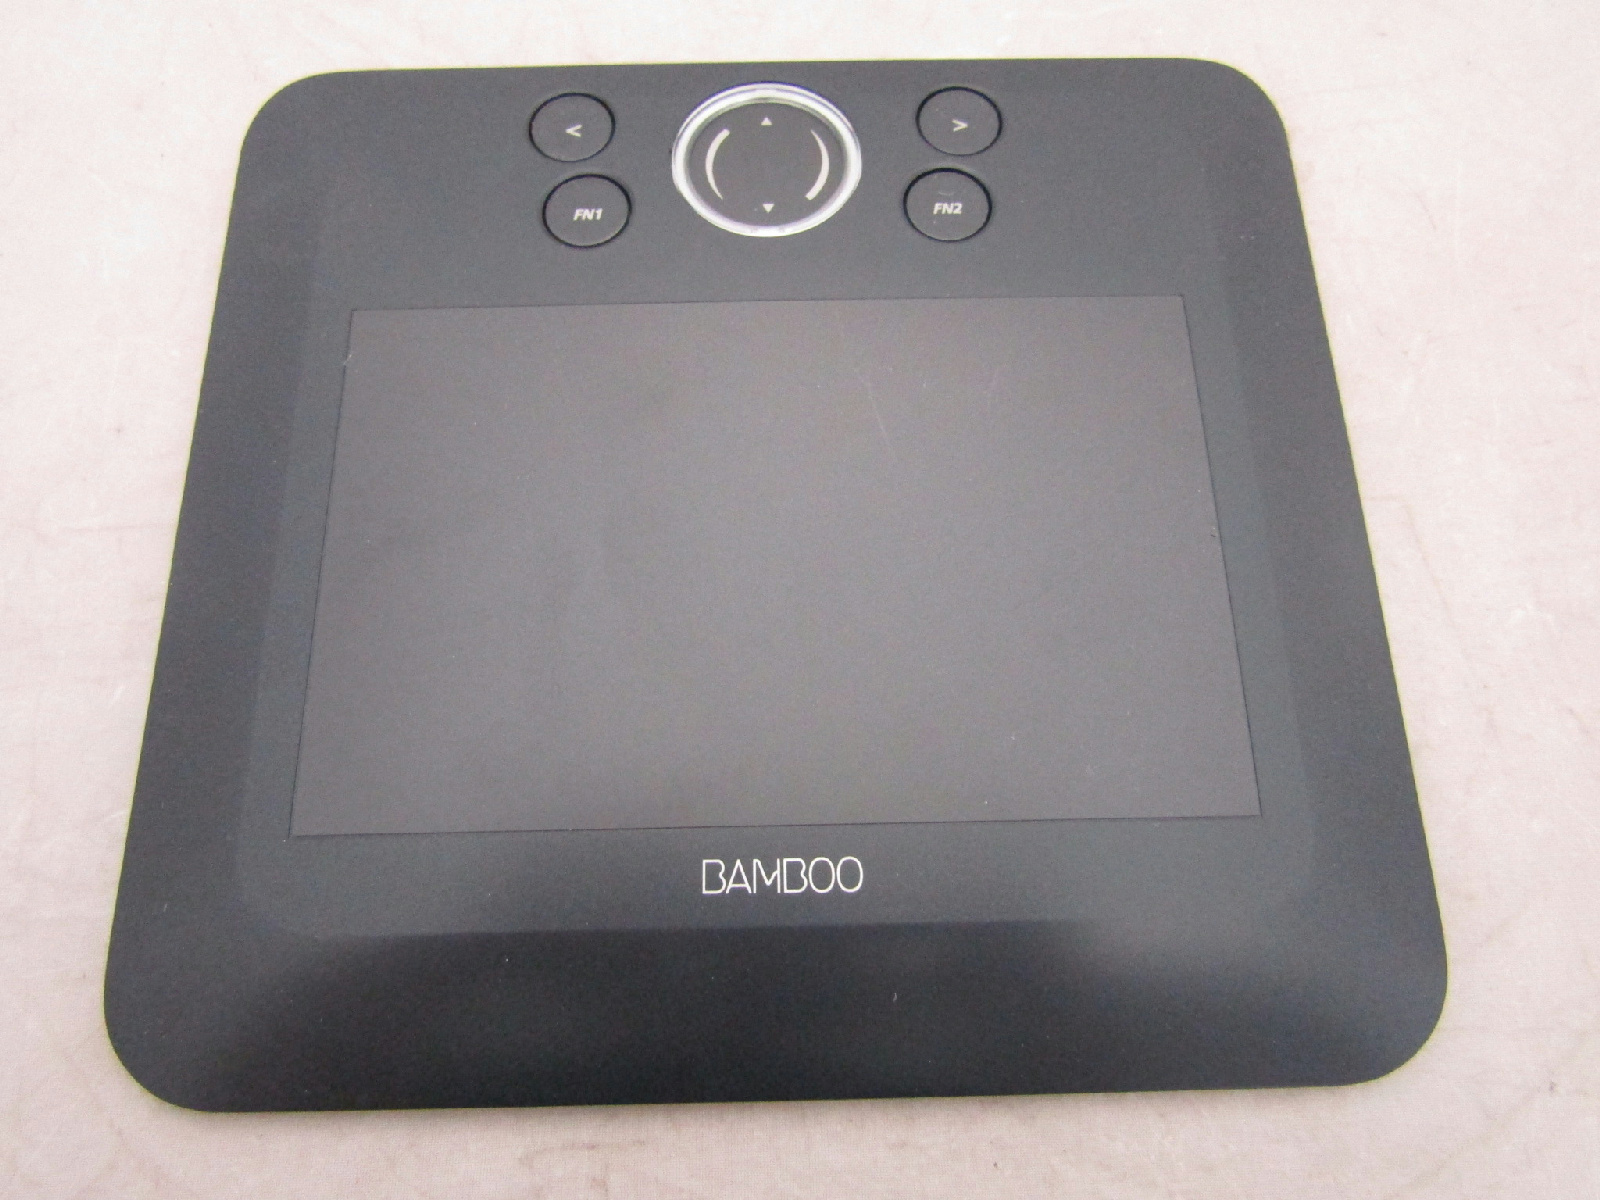 wacom bamboo fun tablet graphics cte 450 iob w pen tablet mouse and software ebay. Black Bedroom Furniture Sets. Home Design Ideas